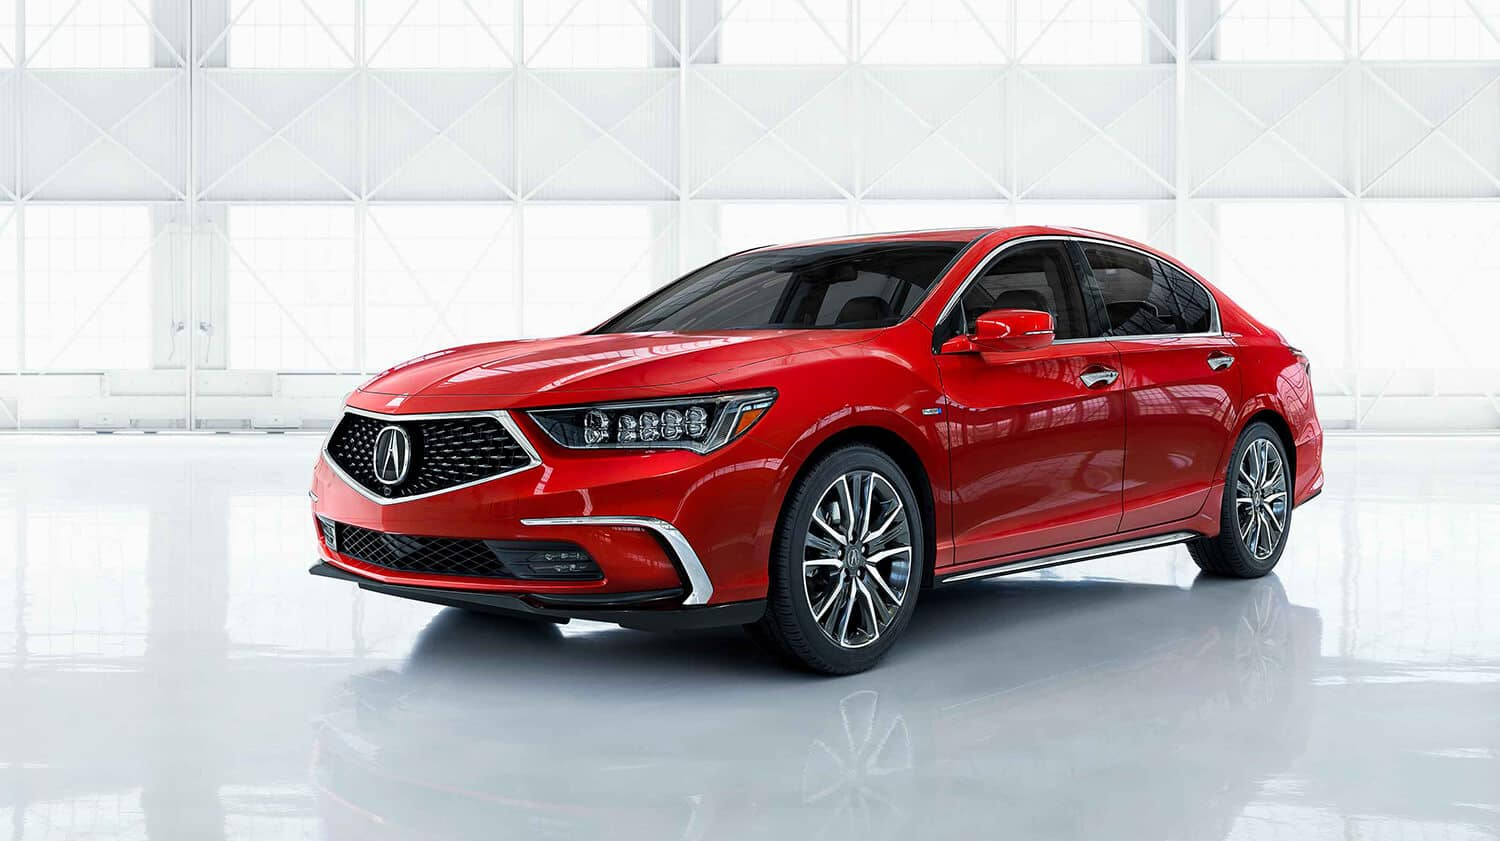 2018 Acura RLX Exterior Front Angle Driver Side Red